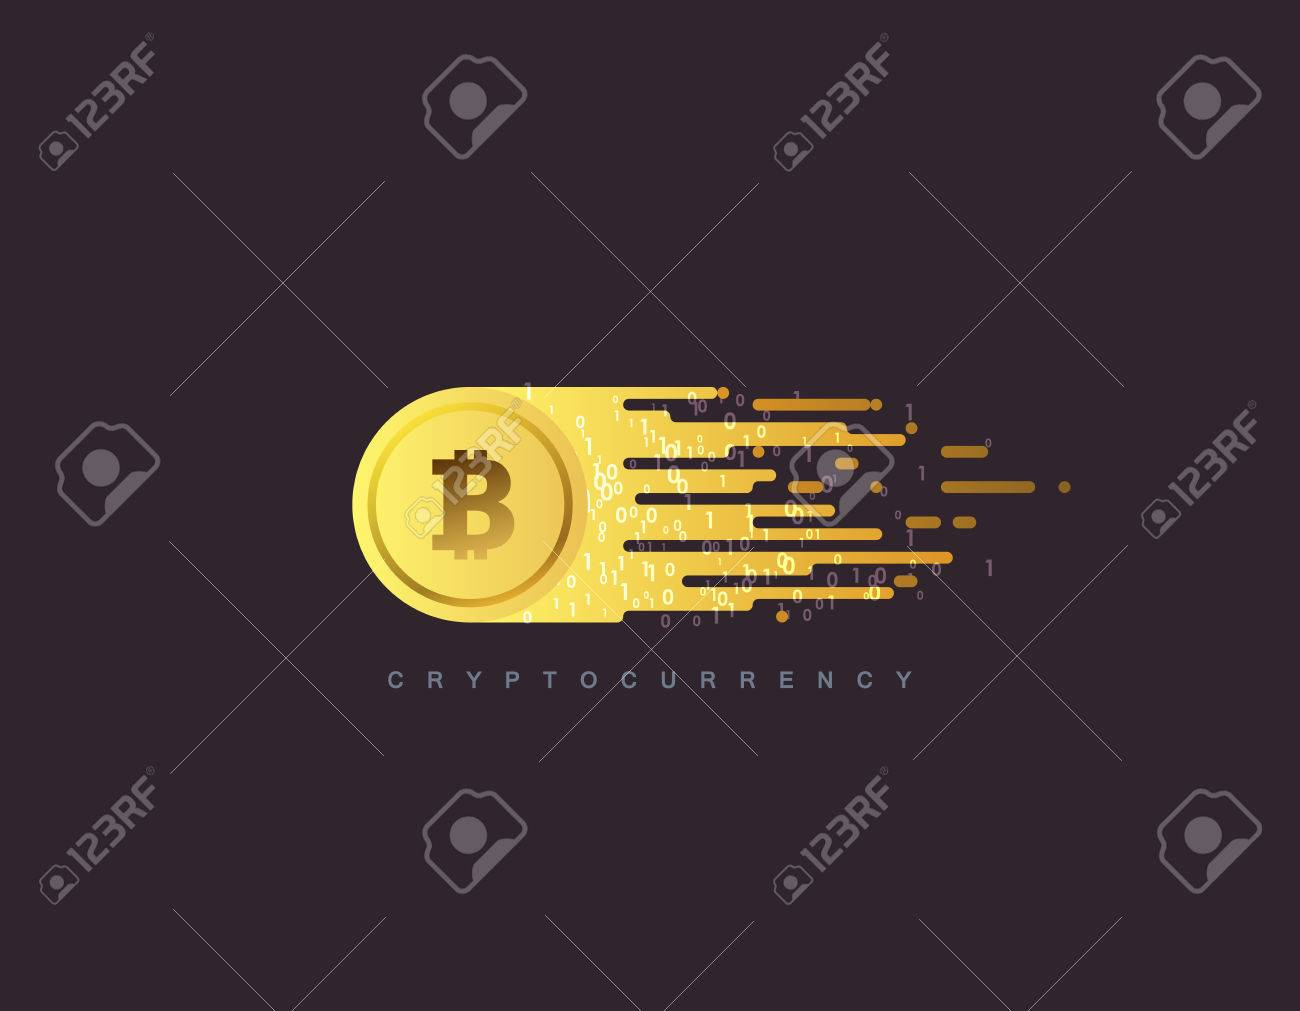 Cryptocurrency concept. - 81168038